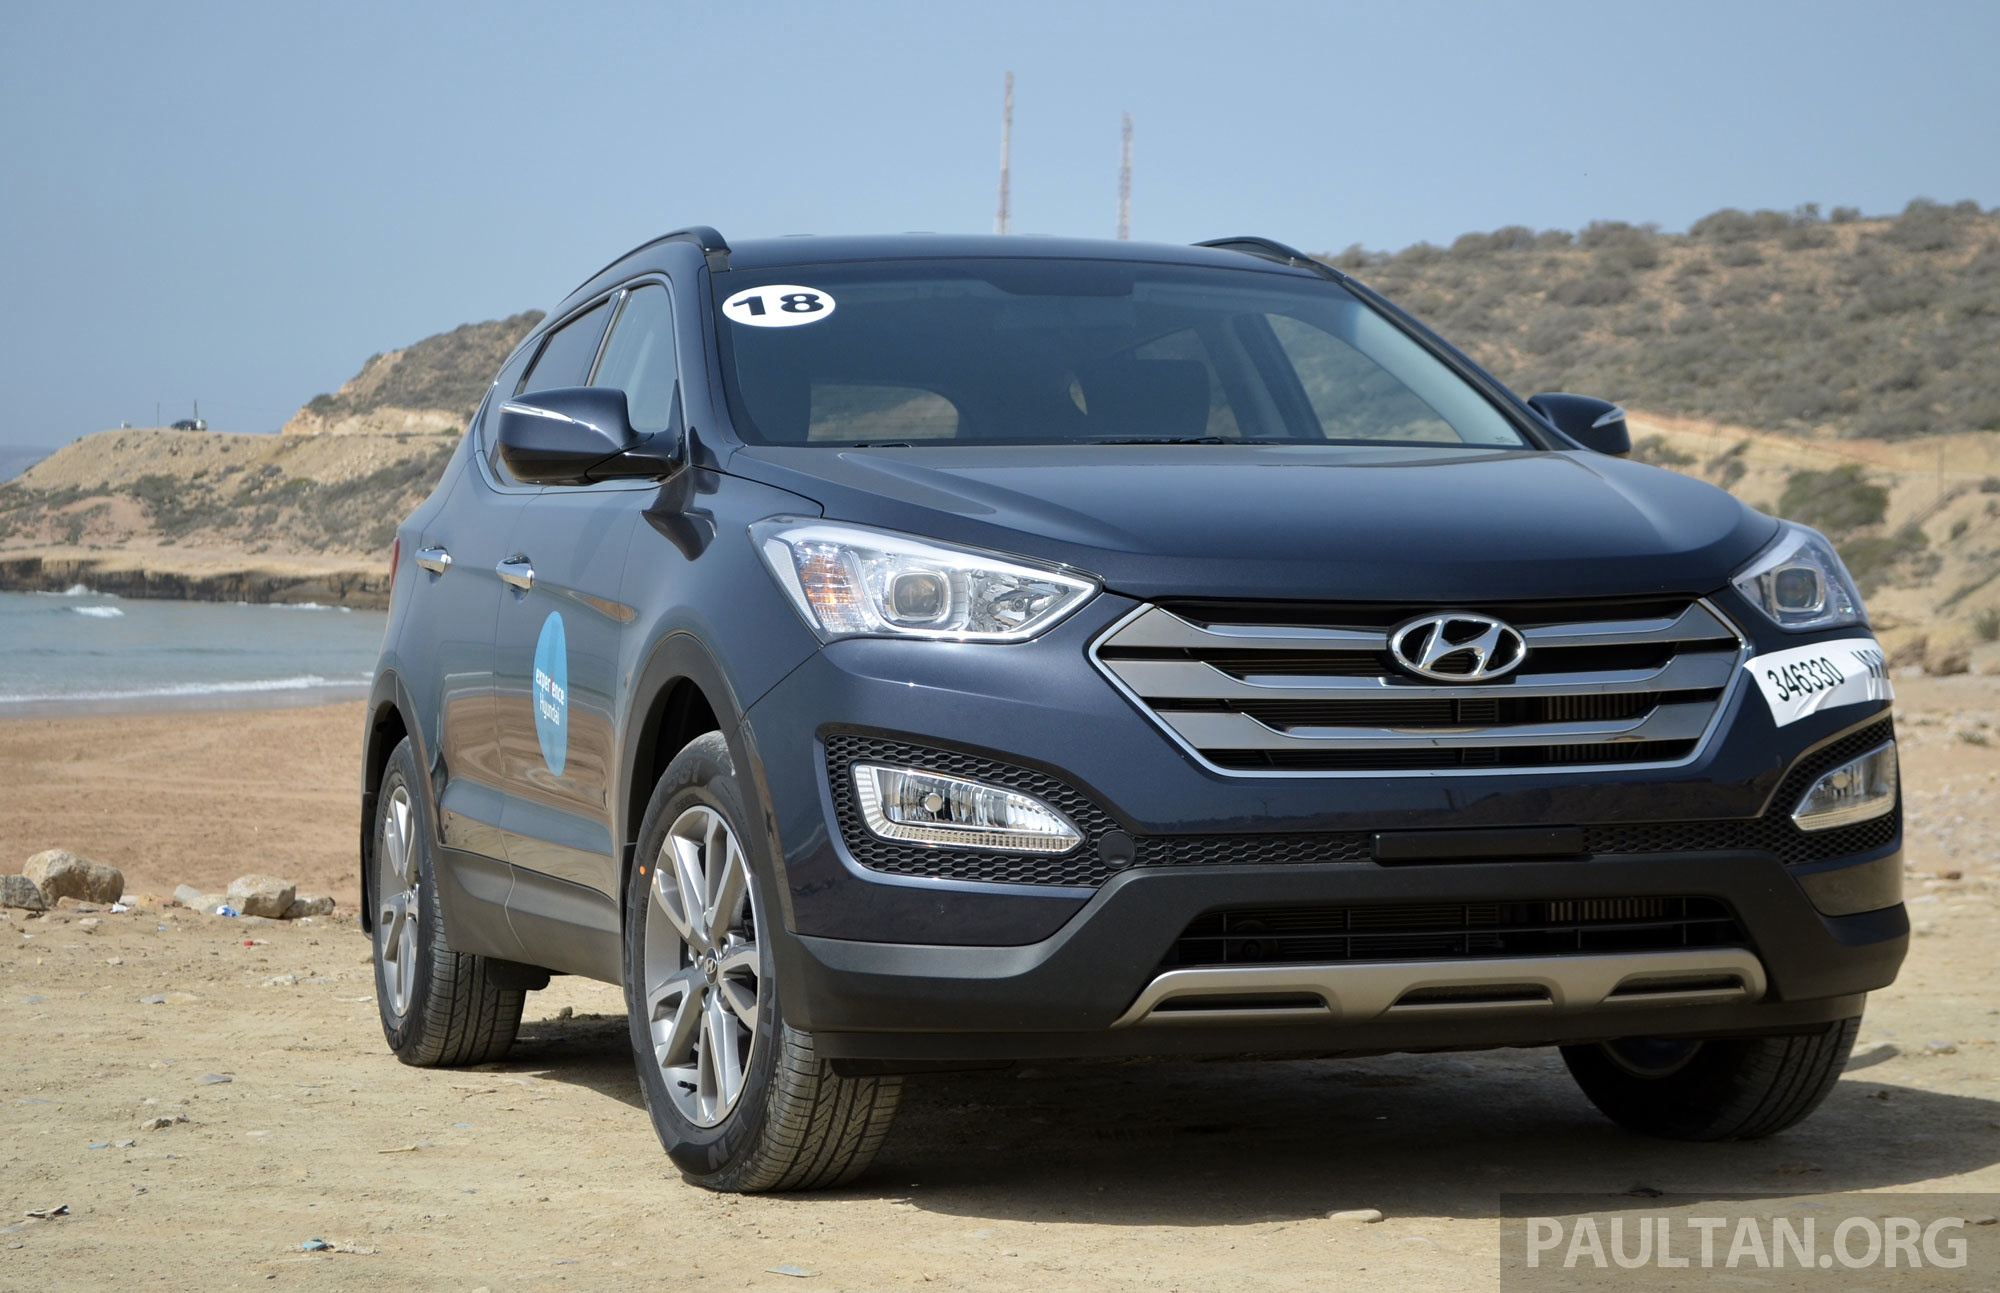 Hyundai Santa Fe 2 2 CRDI test drive review